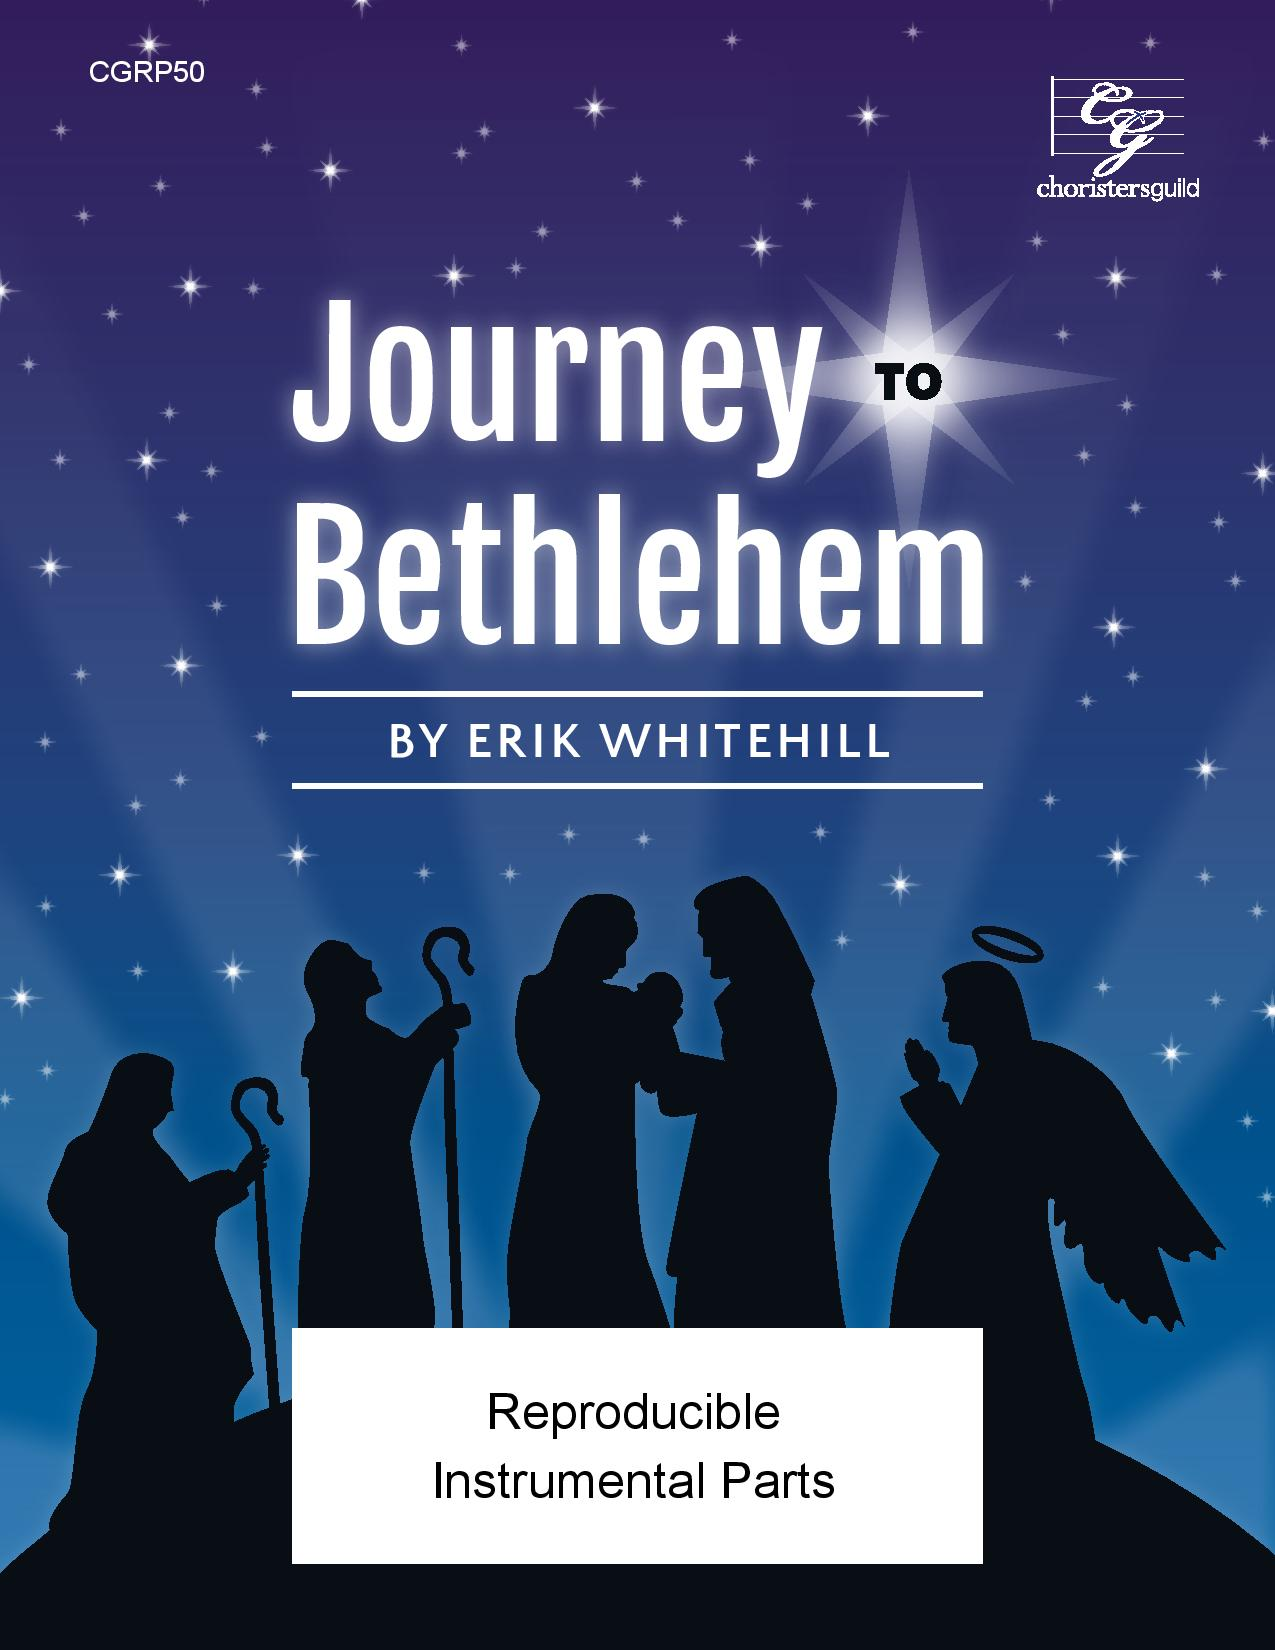 Journey to Bethlehem - Reproducible Instrumental Parts